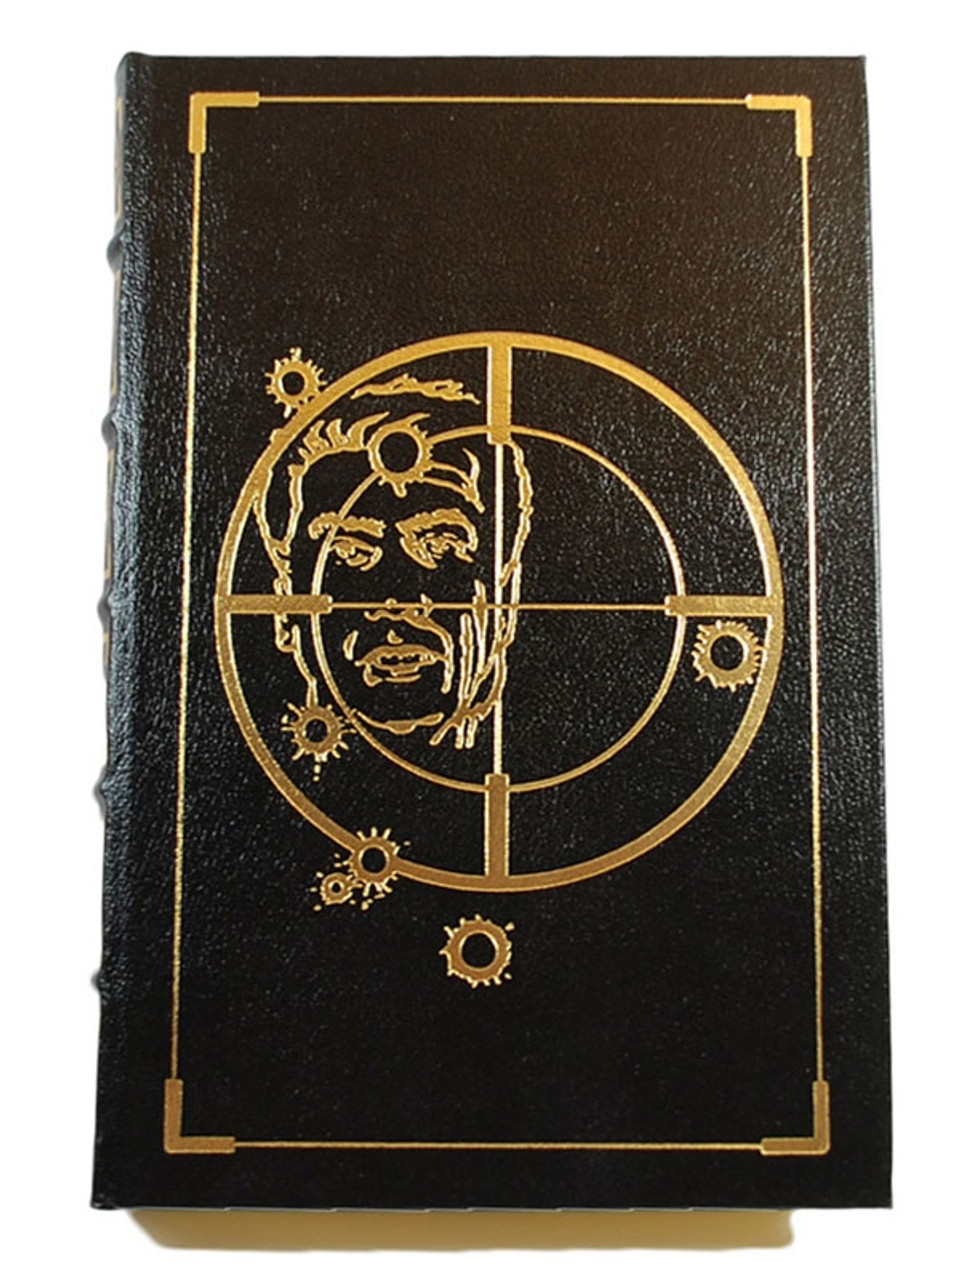 The Dead Zone Stephen King Easton Press Leather Bound